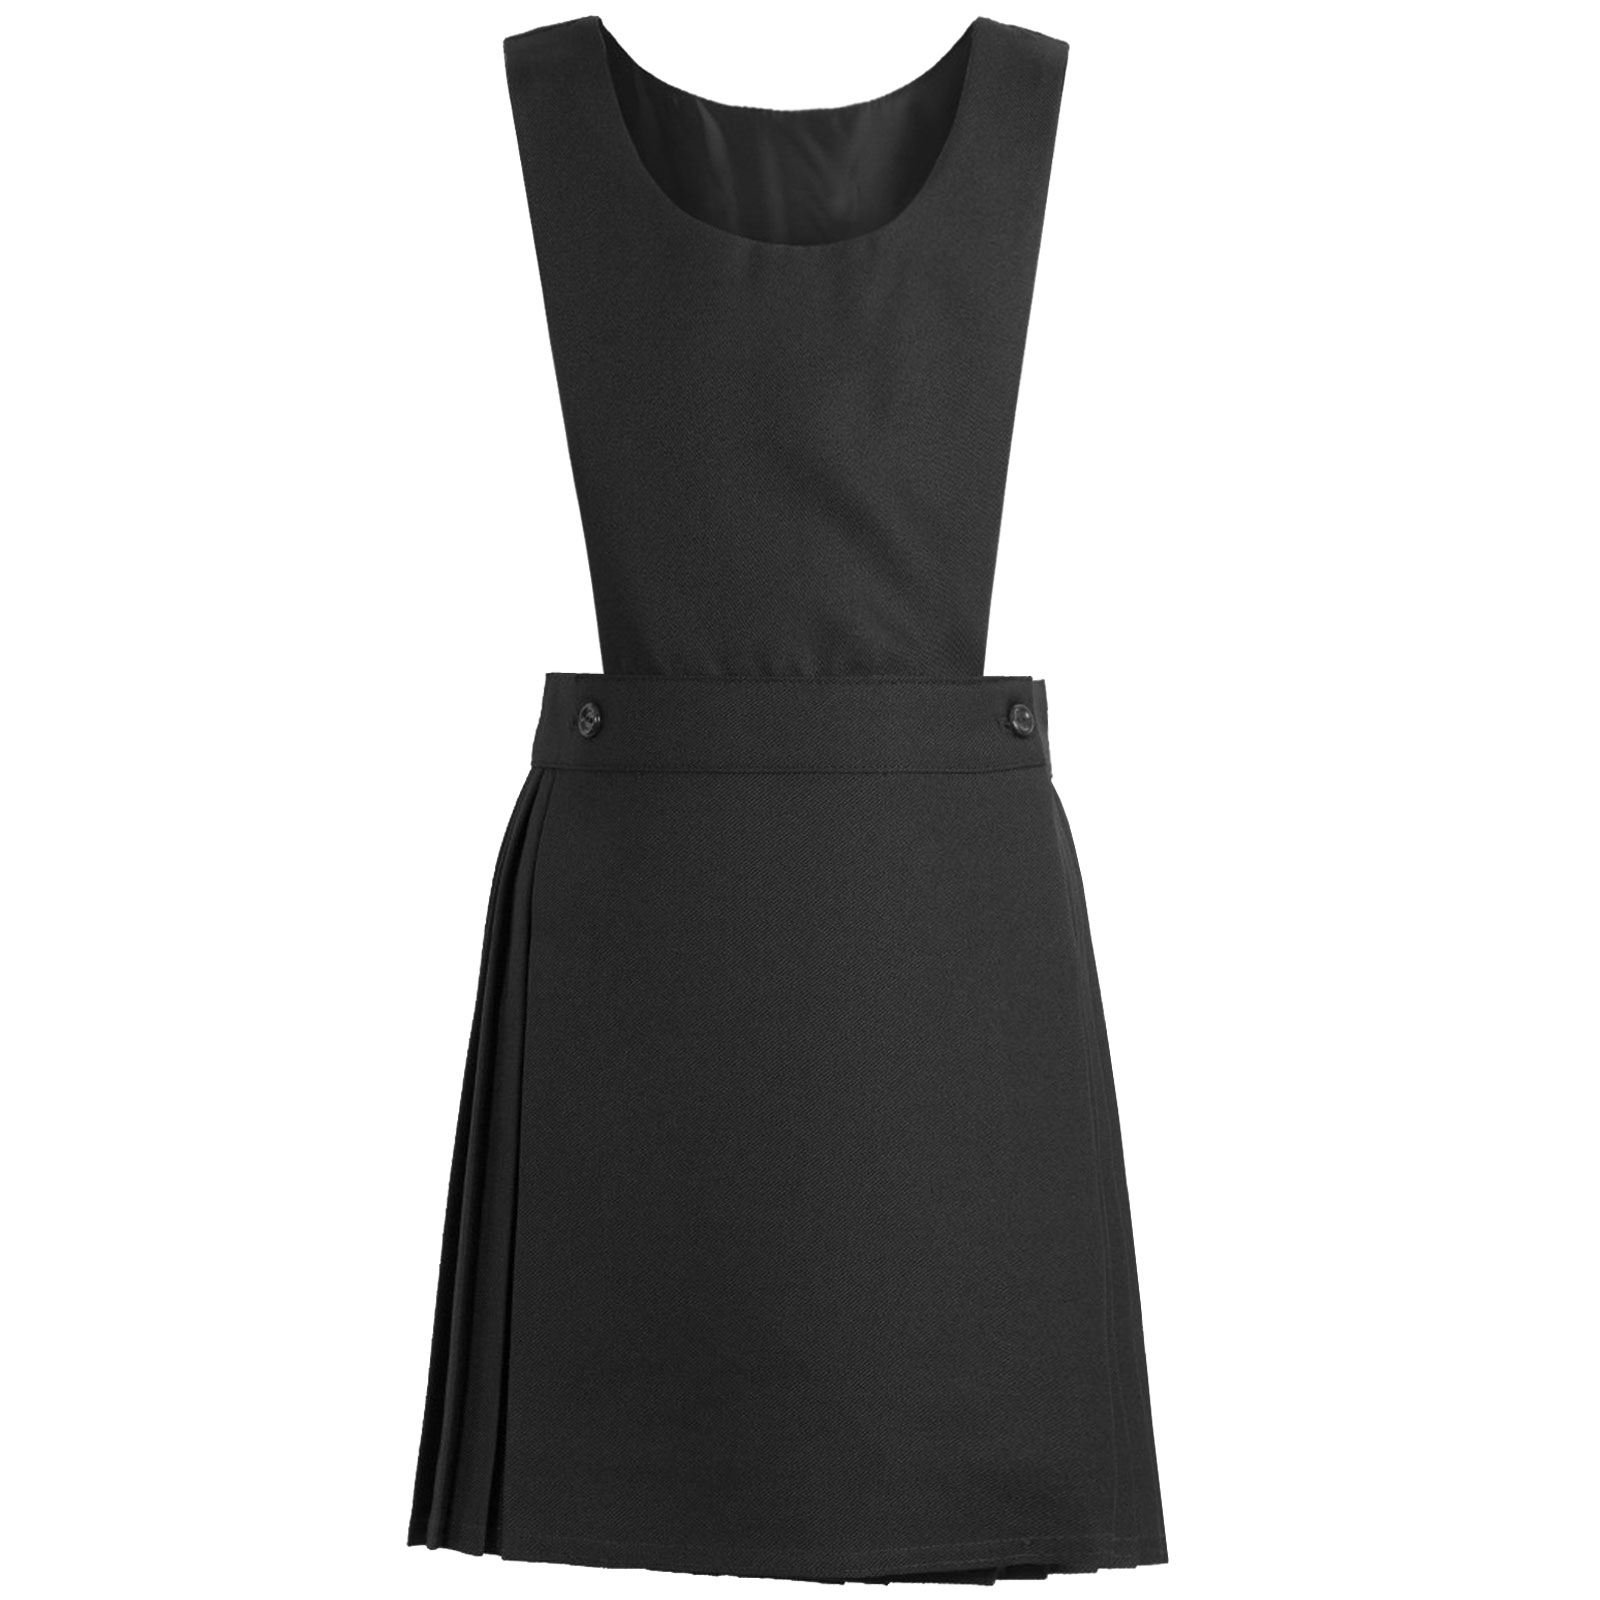 3 Pleat with Waistband Pleated Design School Uniform Charcoal Grey Ages 4-13 Girls School Pinafore